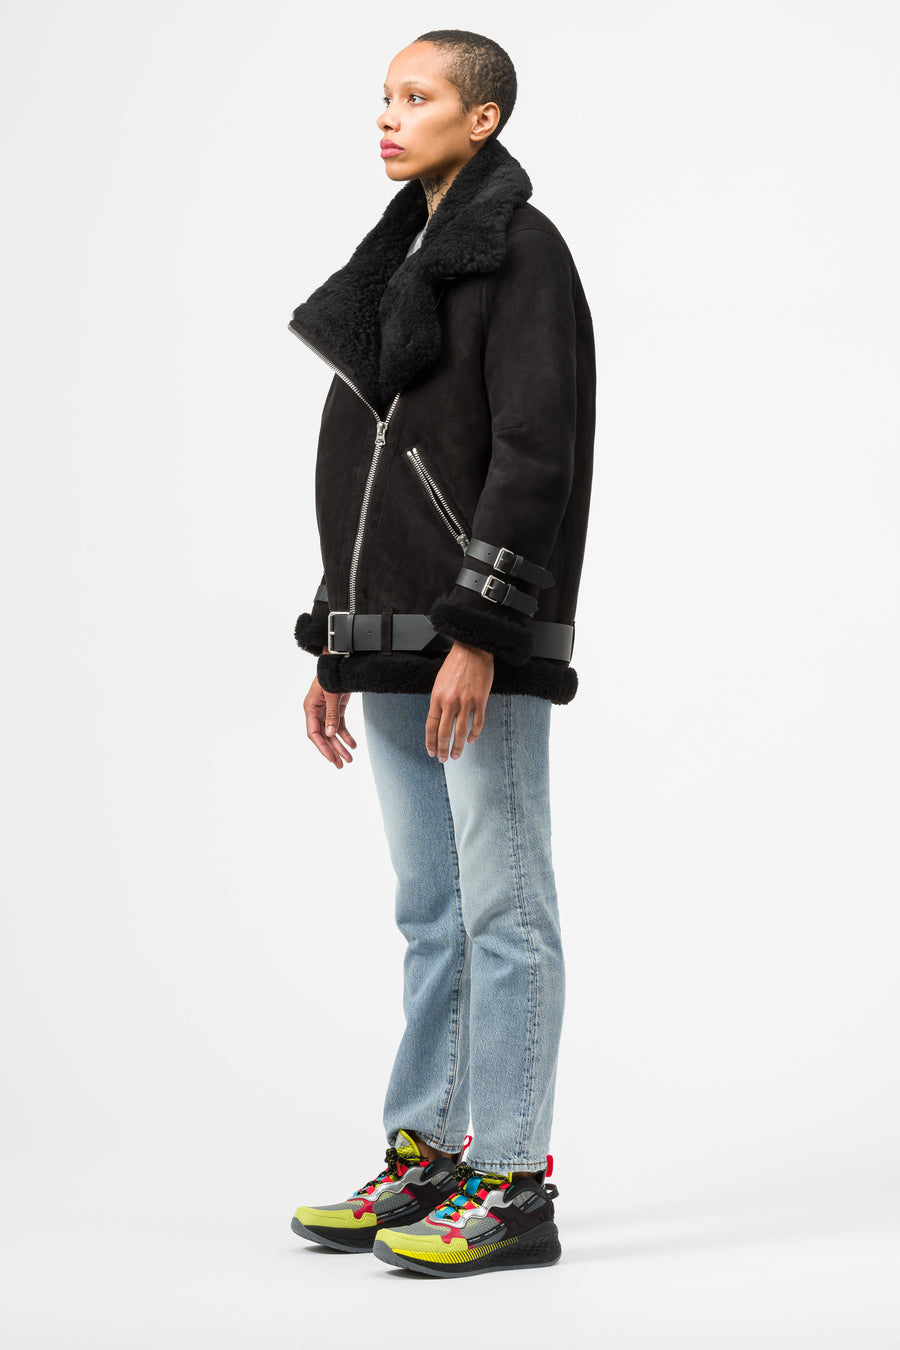 Acne Studios Velocite Suede Jacket in Black - Notre